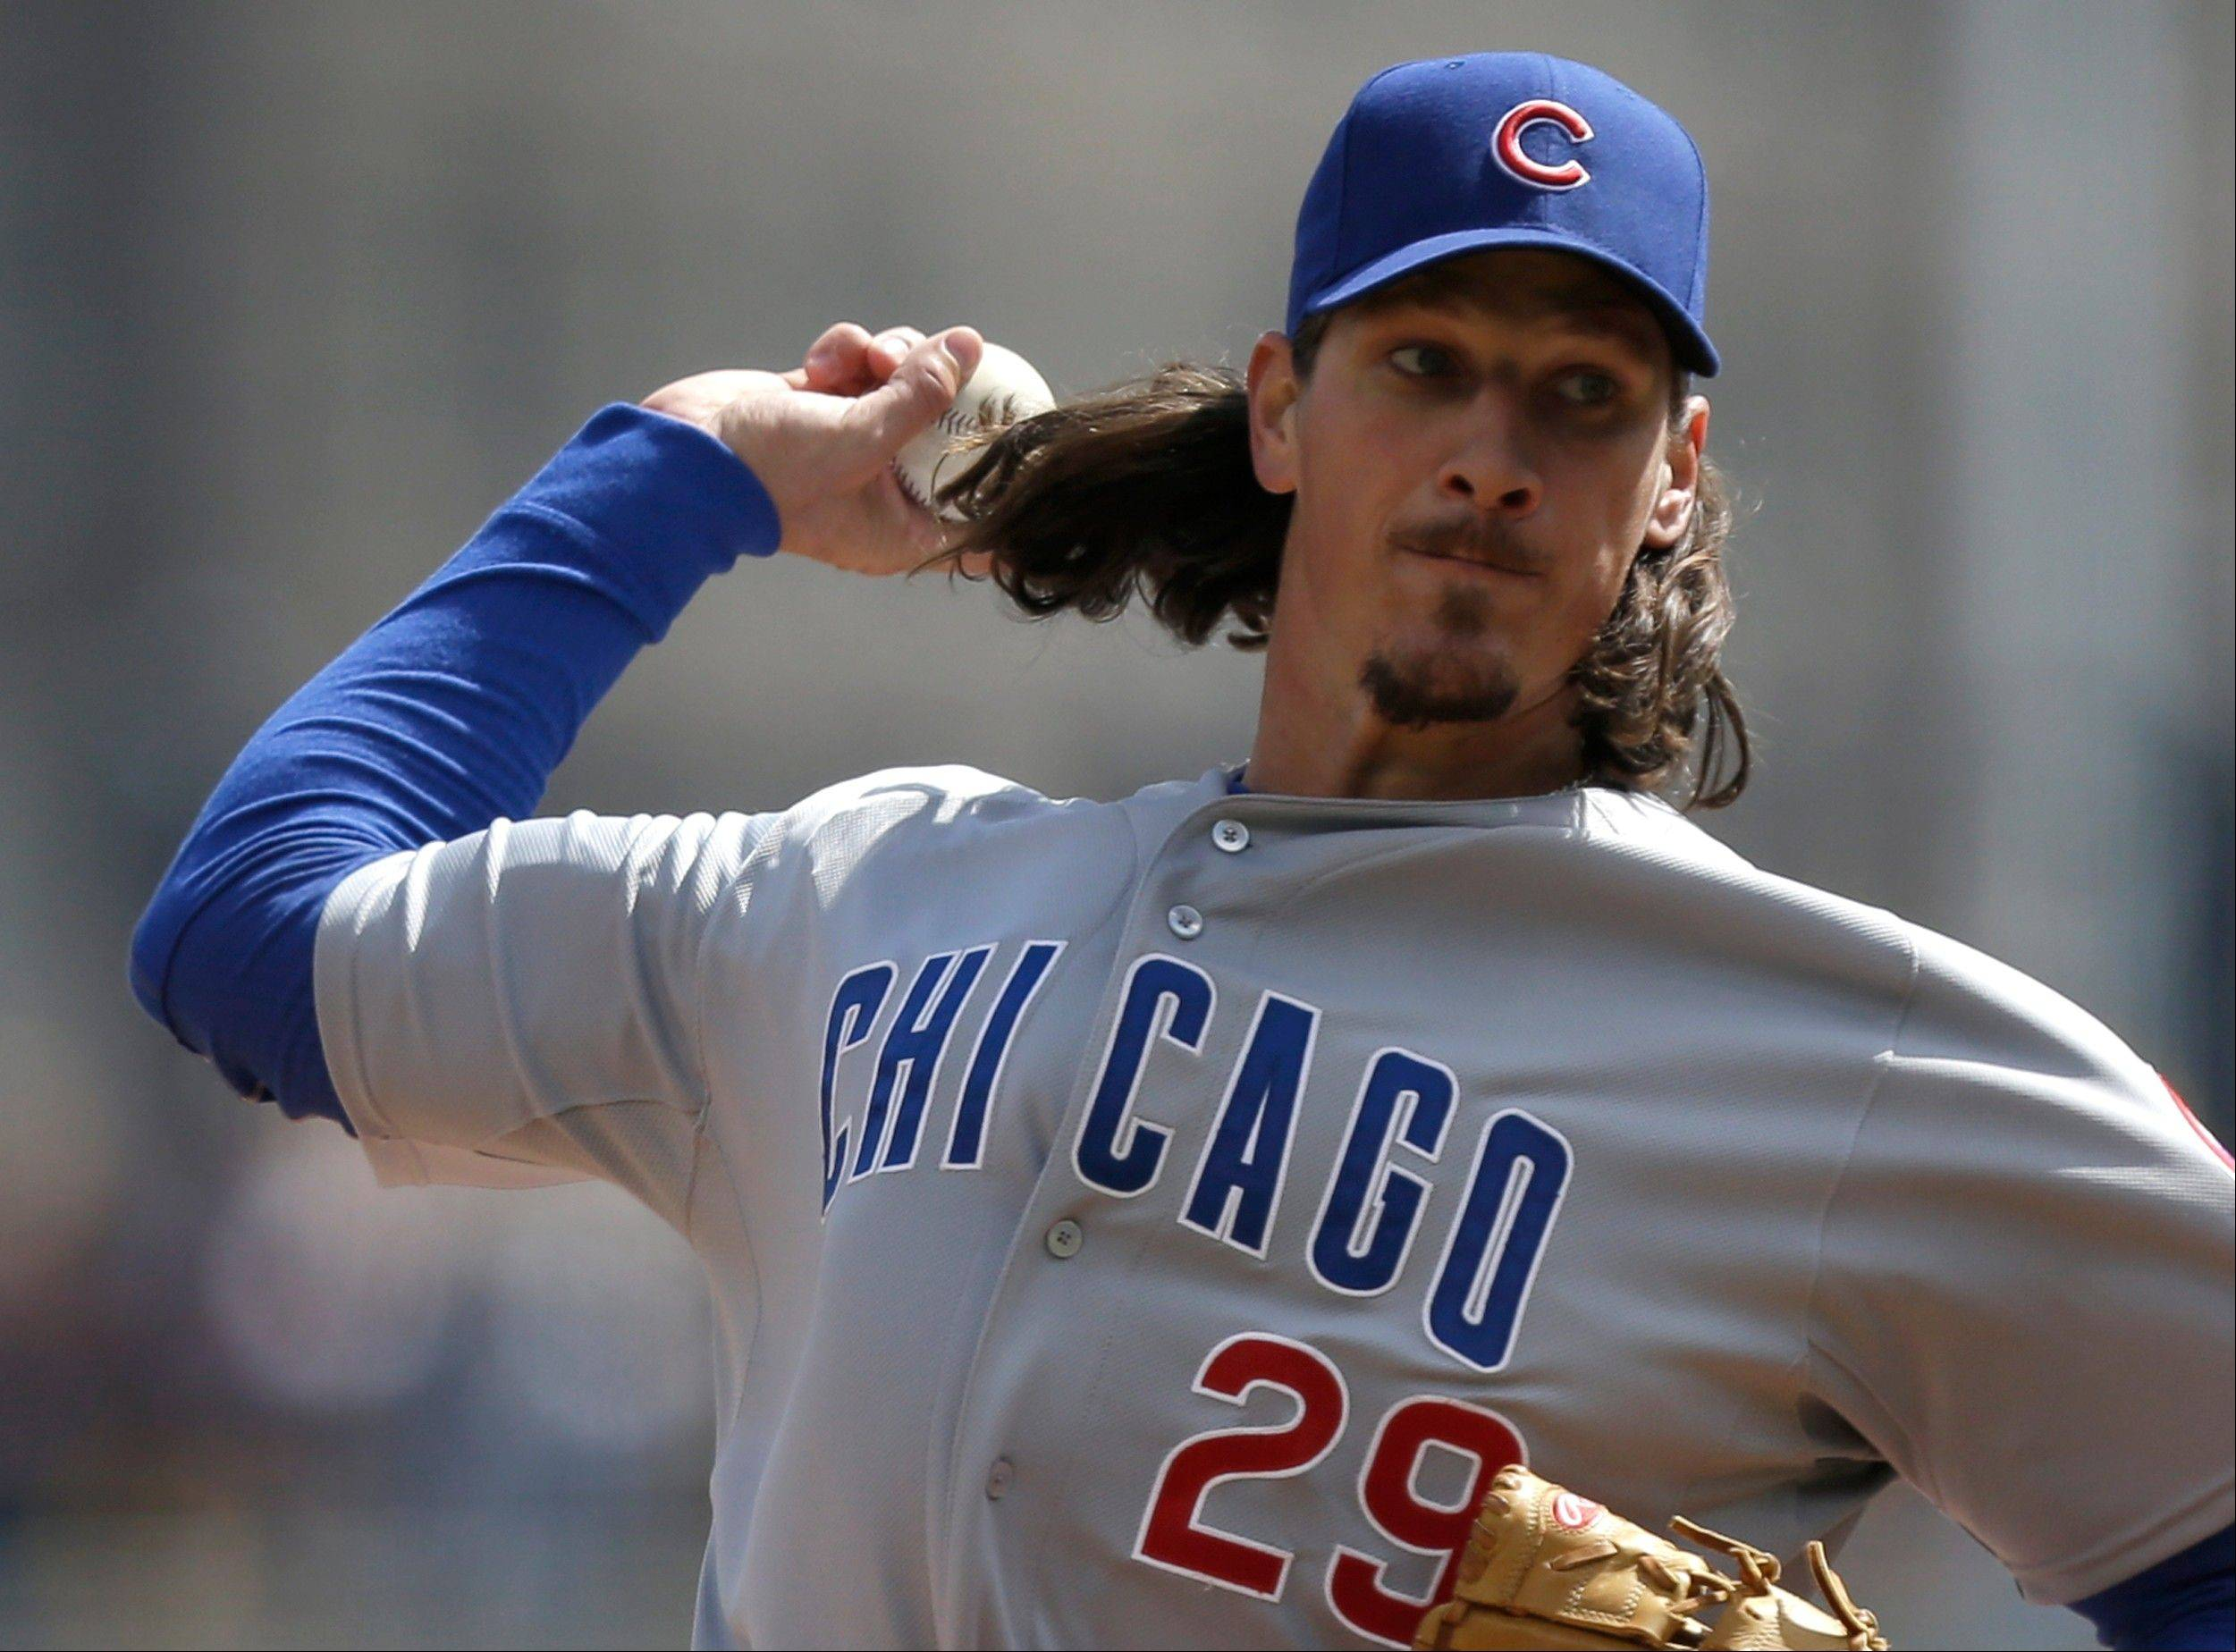 Chicago Cubs starting pitcher Jeff Samardzija throws against the Pittsburgh Pirates in the first inning.